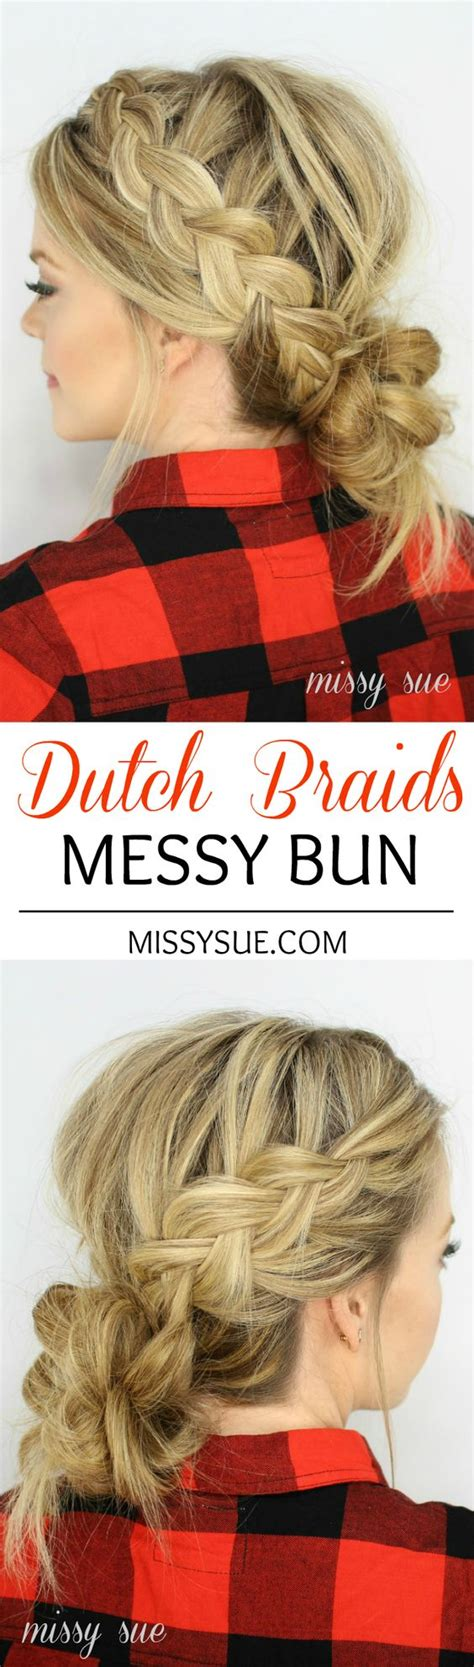 cornrows and loose bun dutch braids low messy buns and messy buns on pinterest